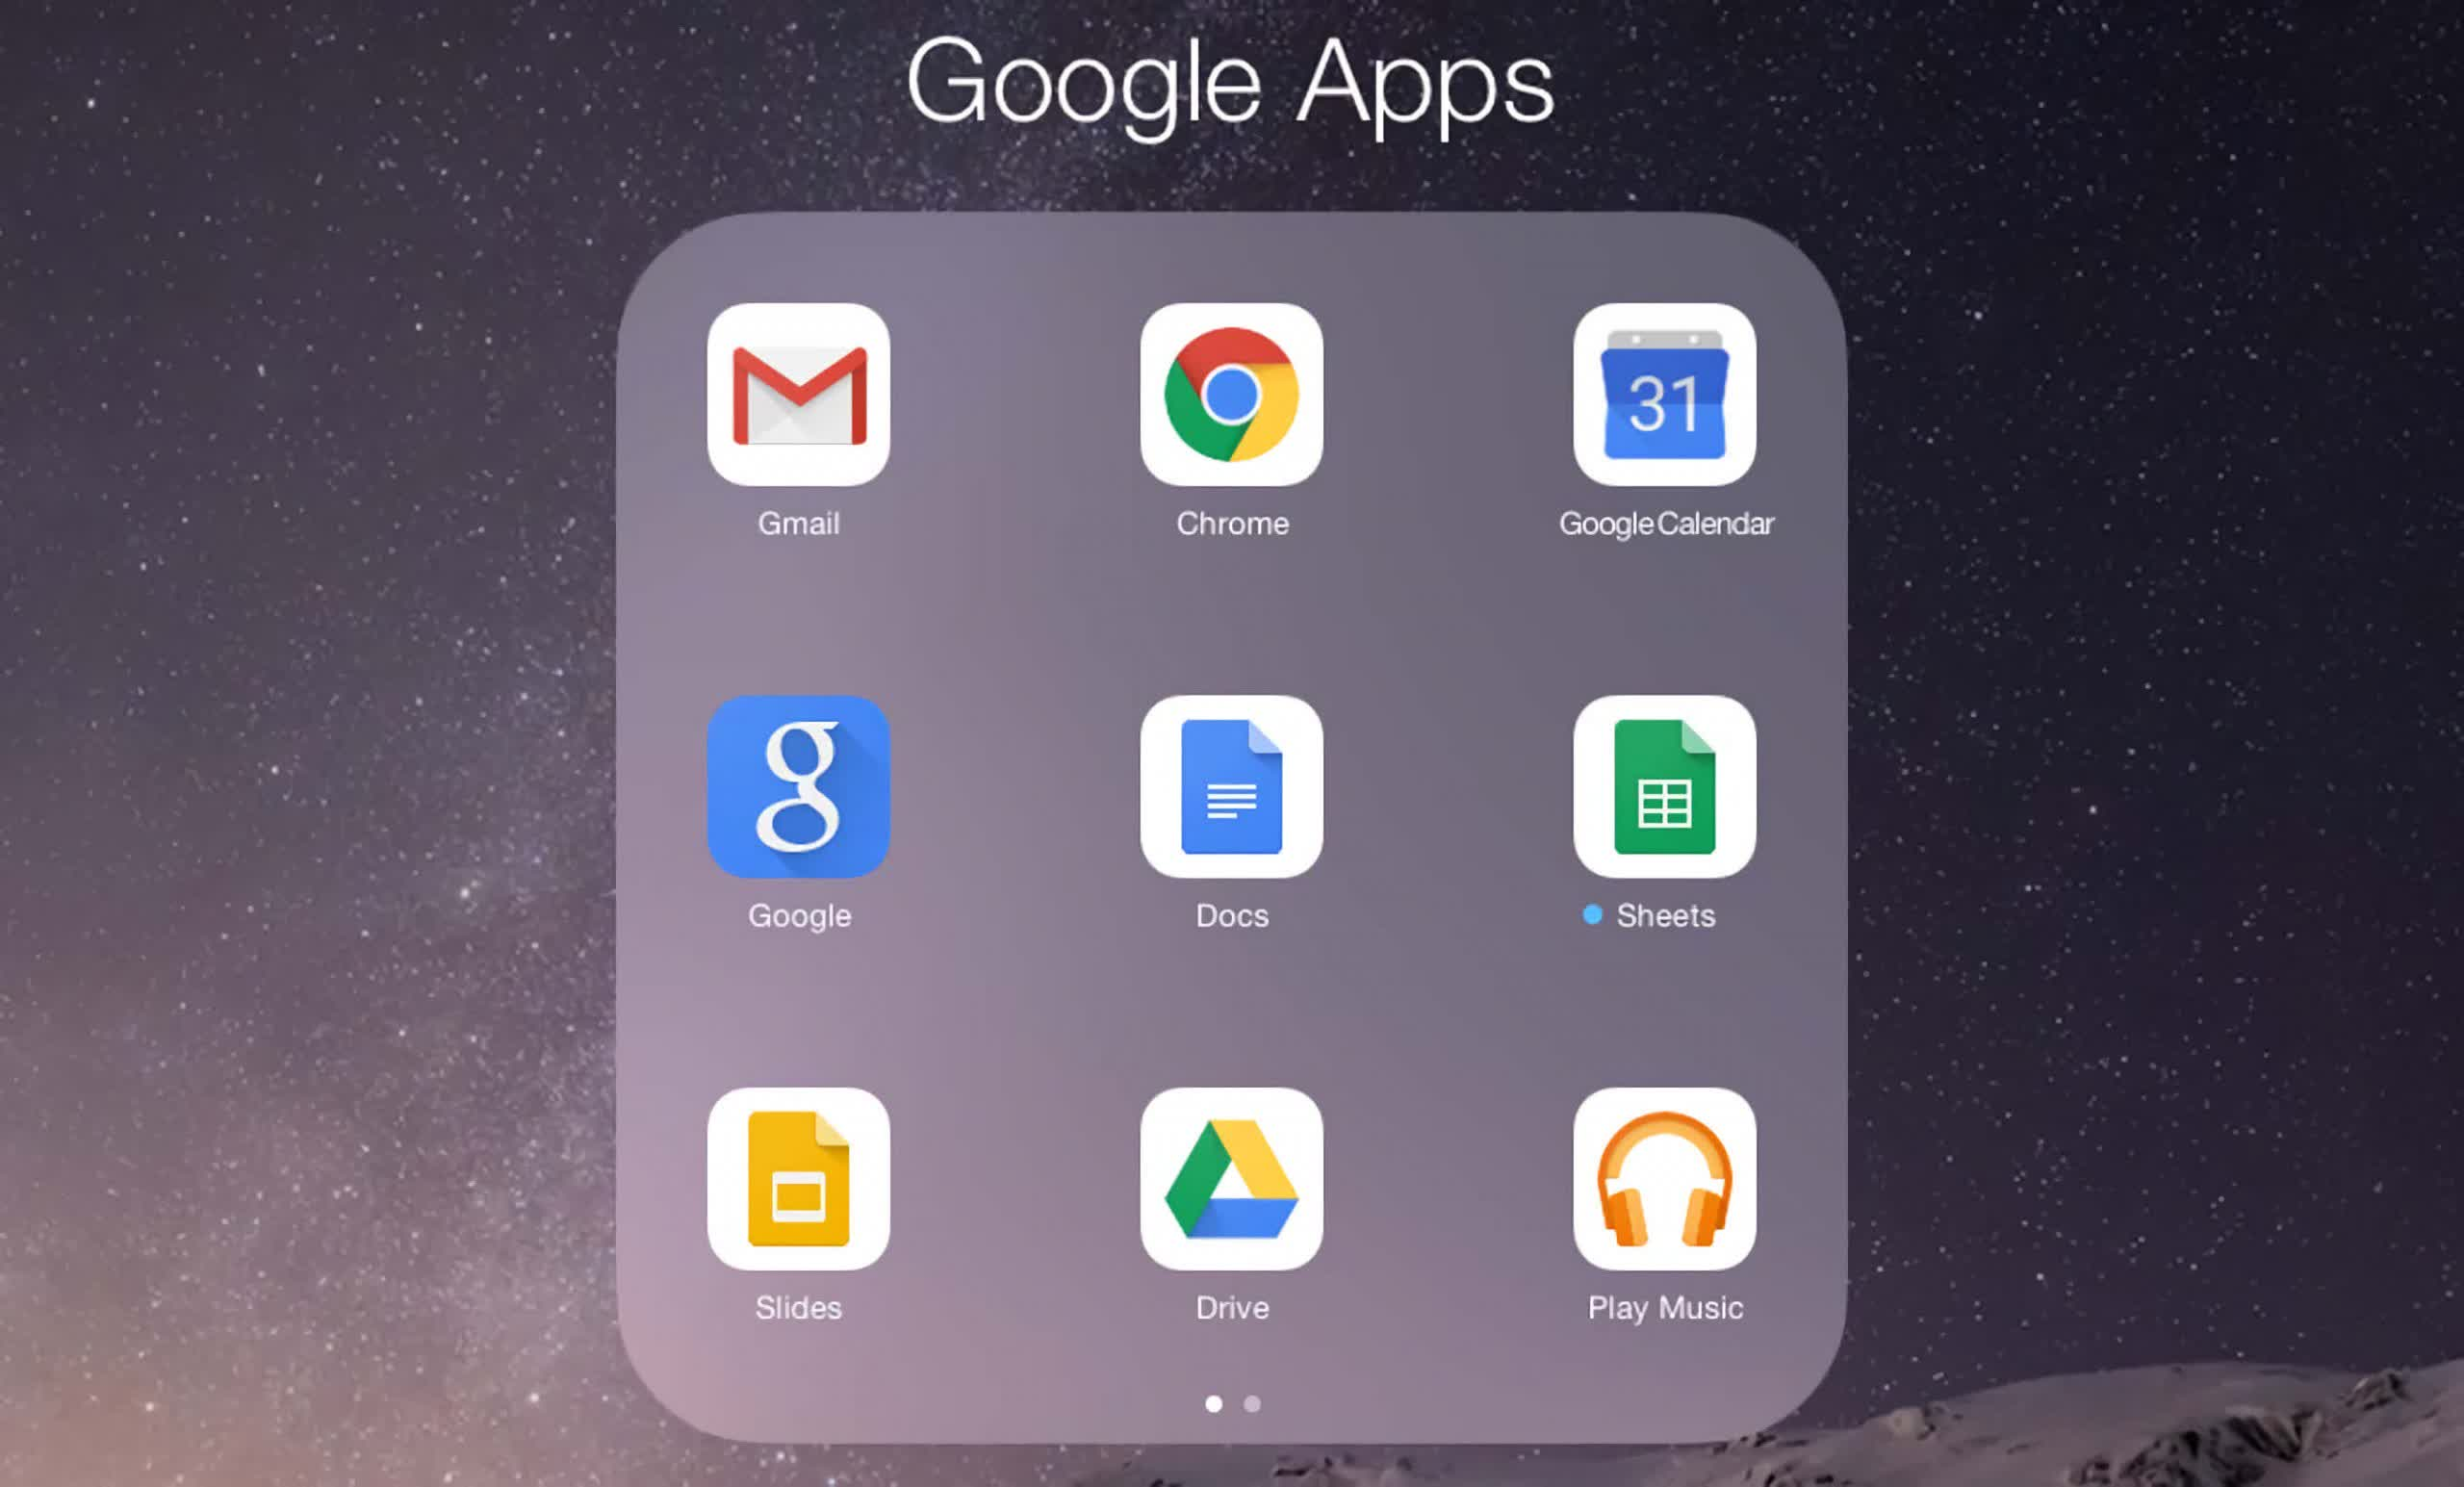 Google still has not updated most of its iOS apps since privacy labeling took effect